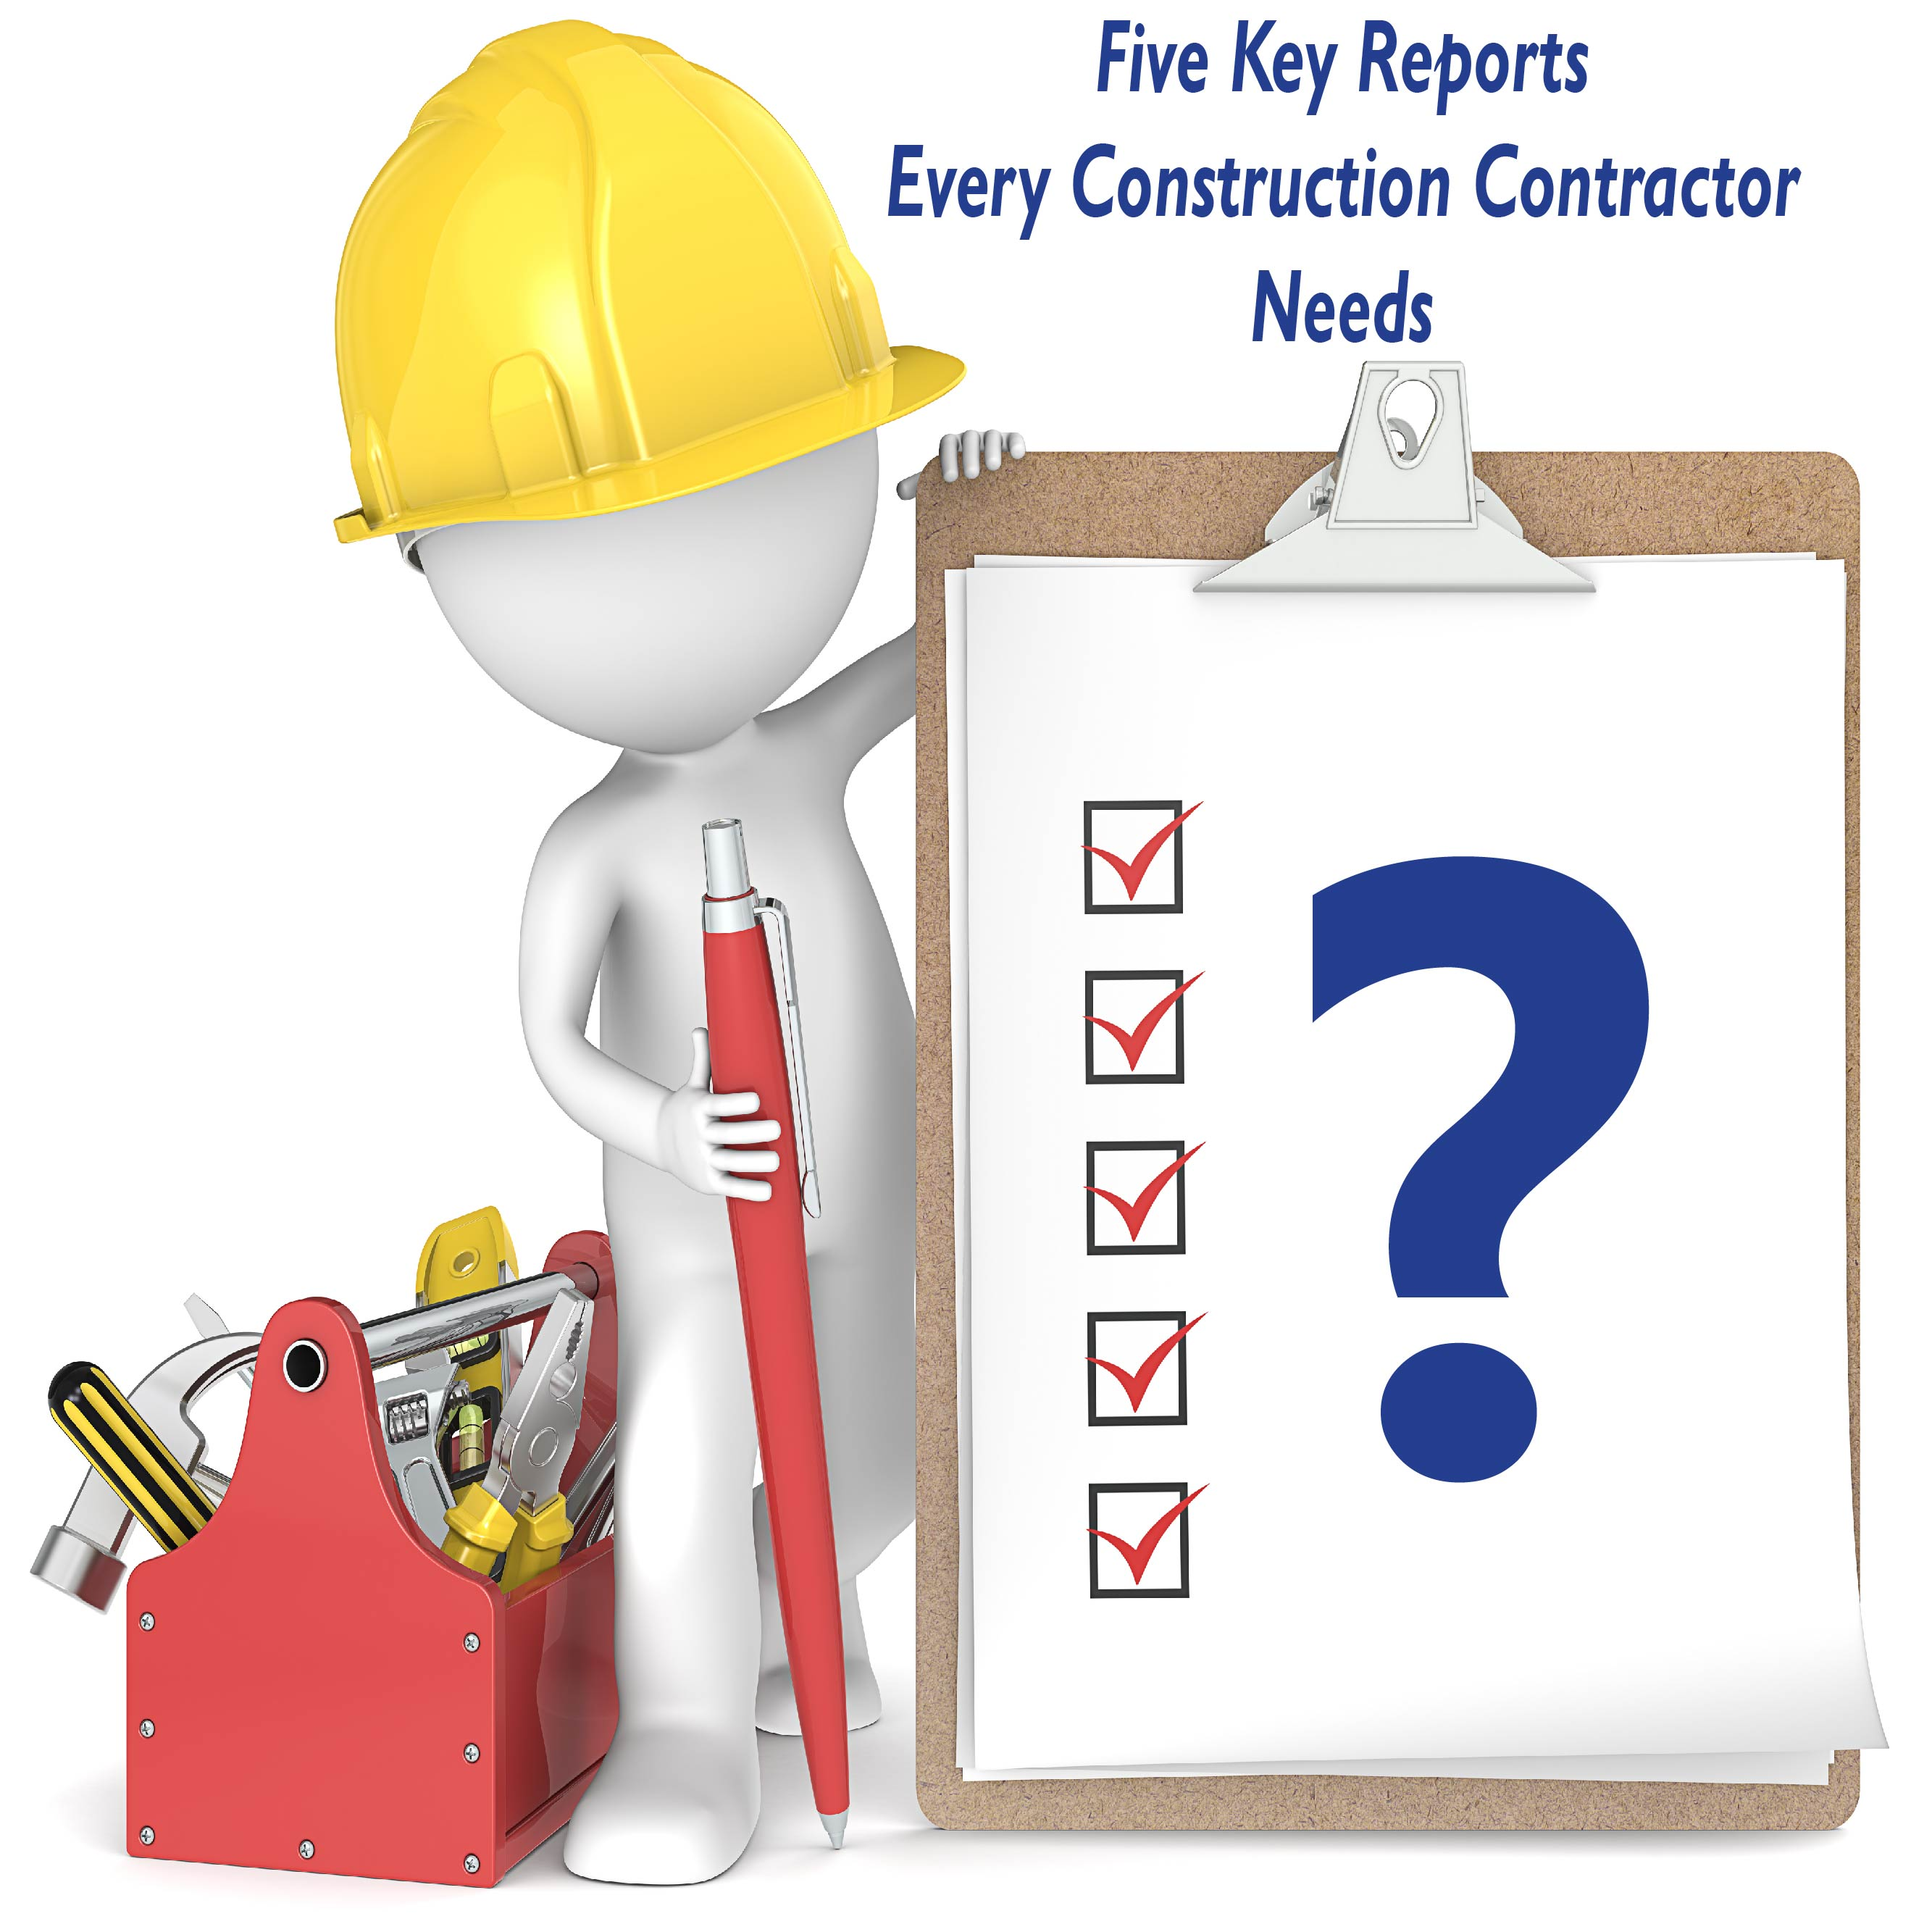 Five_Key_Reports_Every_Contractor_Needs.jpg